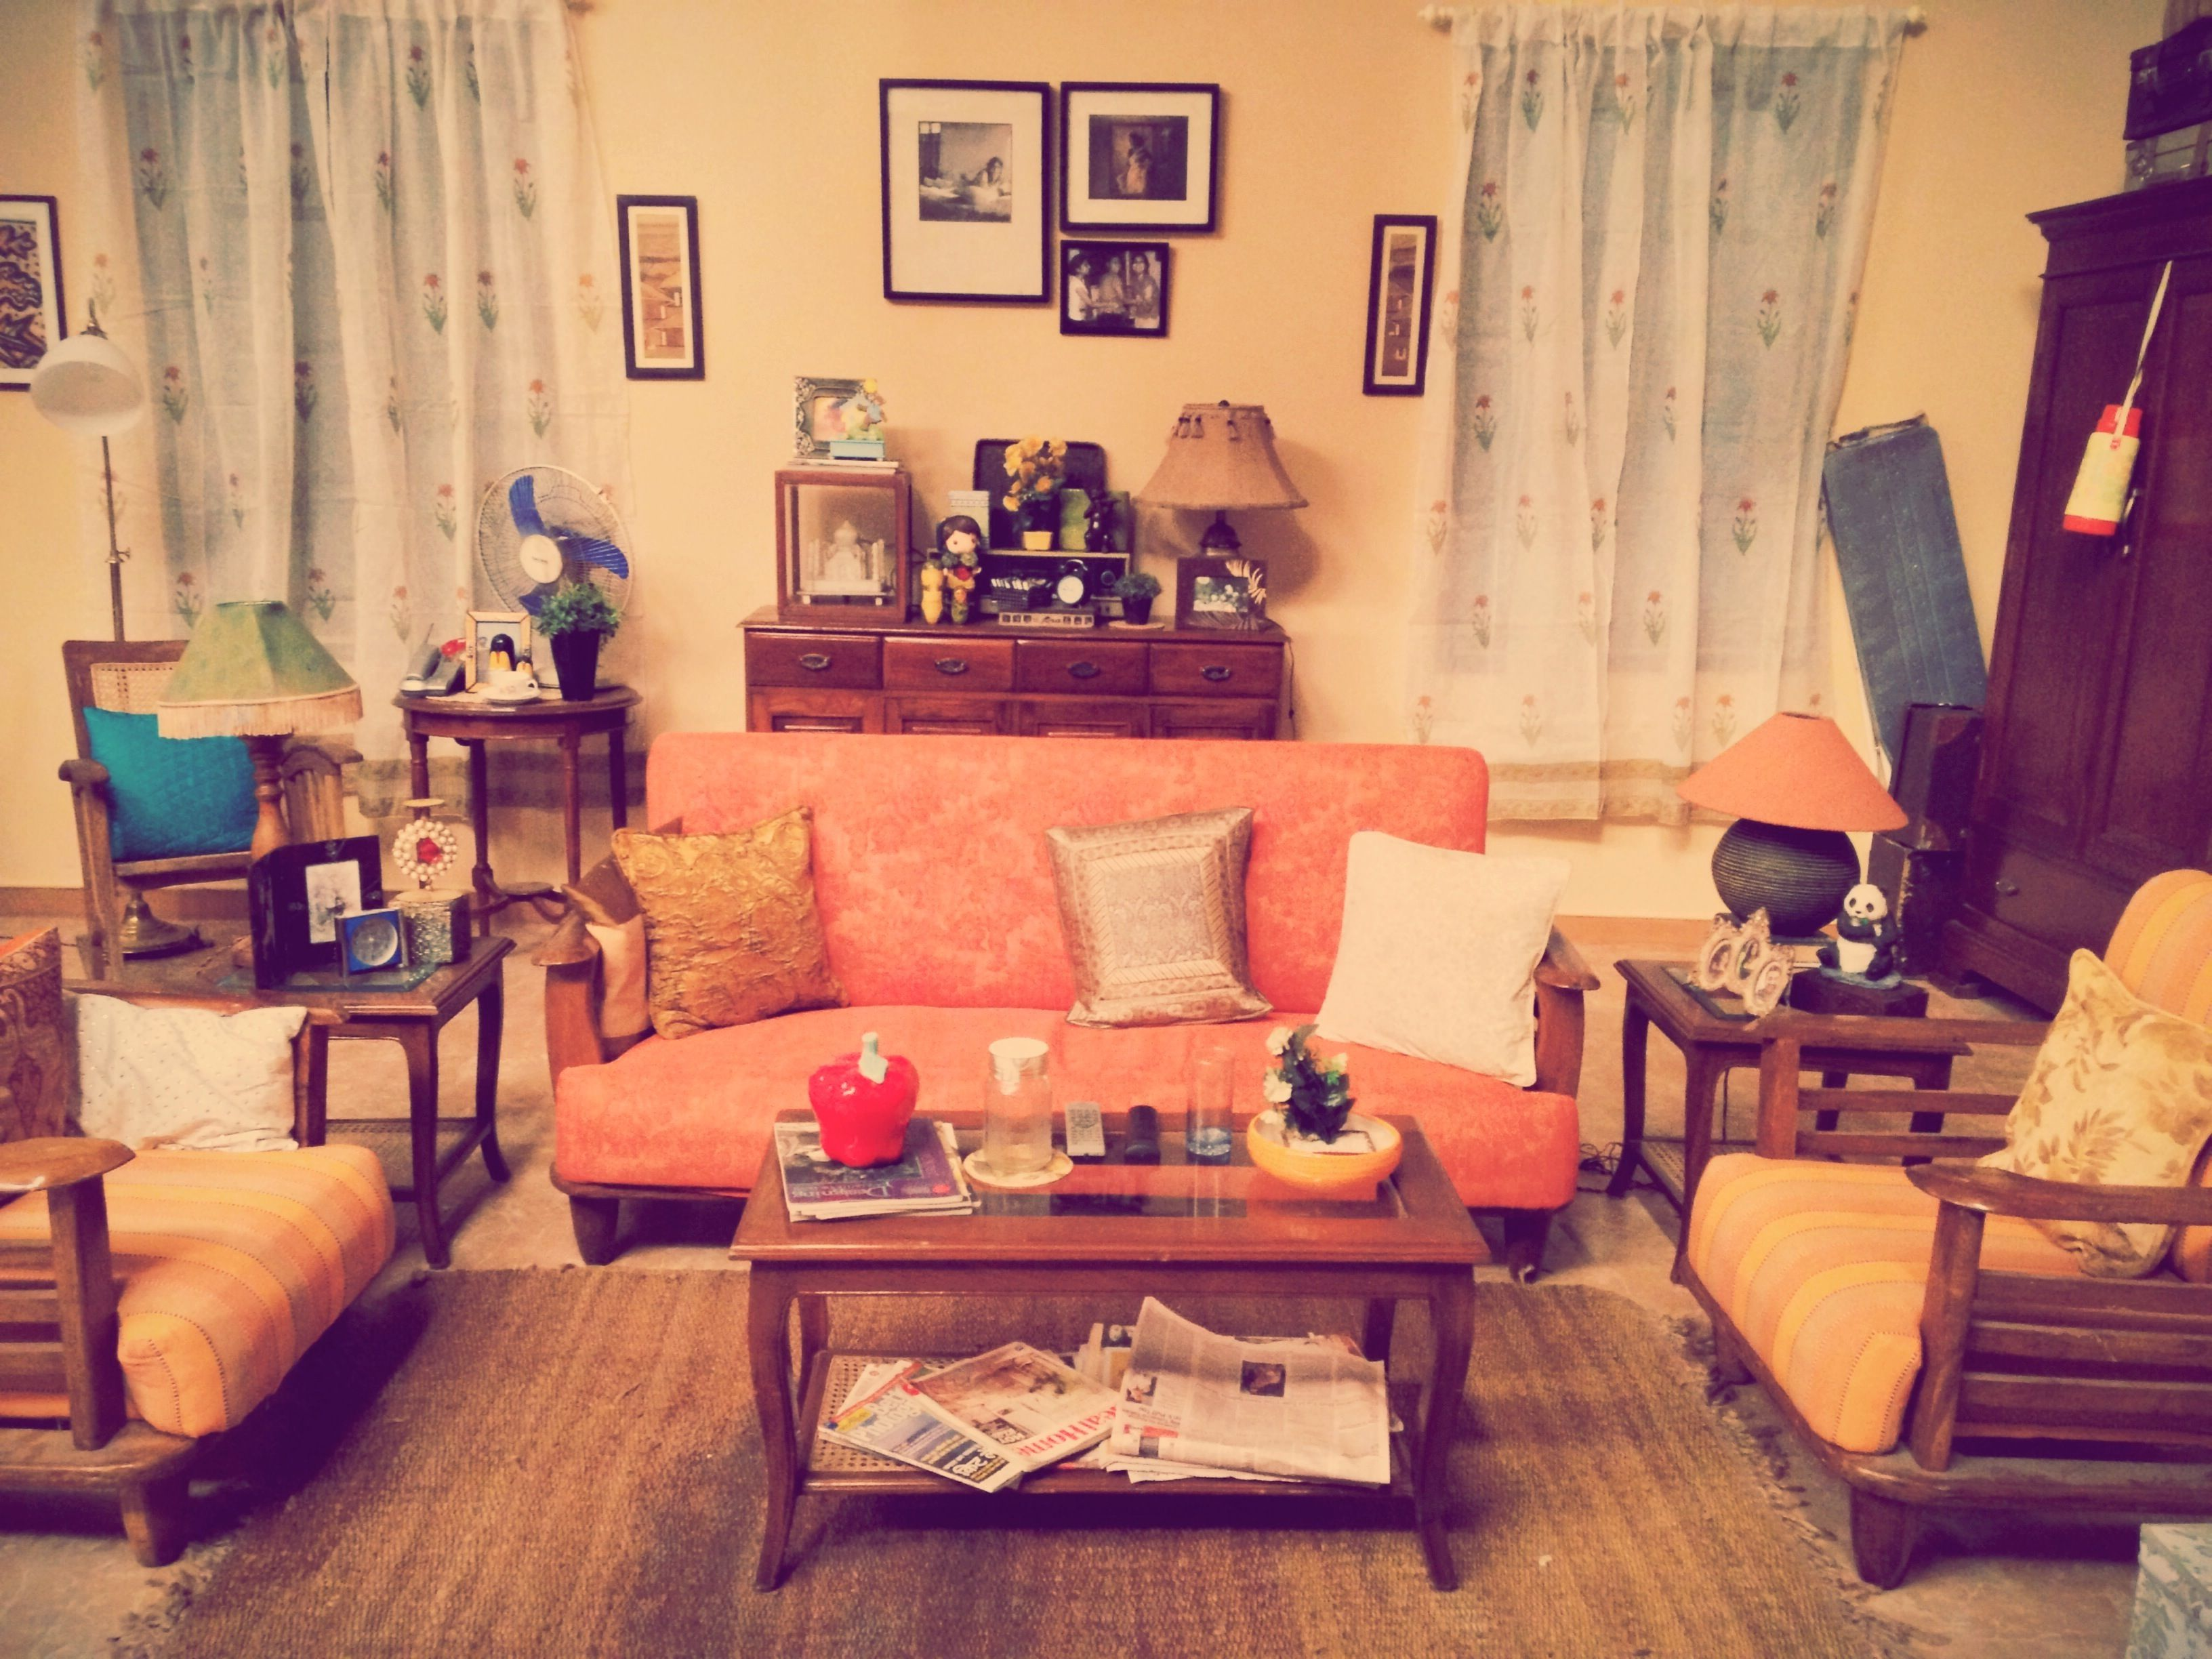 middle class indian living room, styledniyoti | niyoti's work